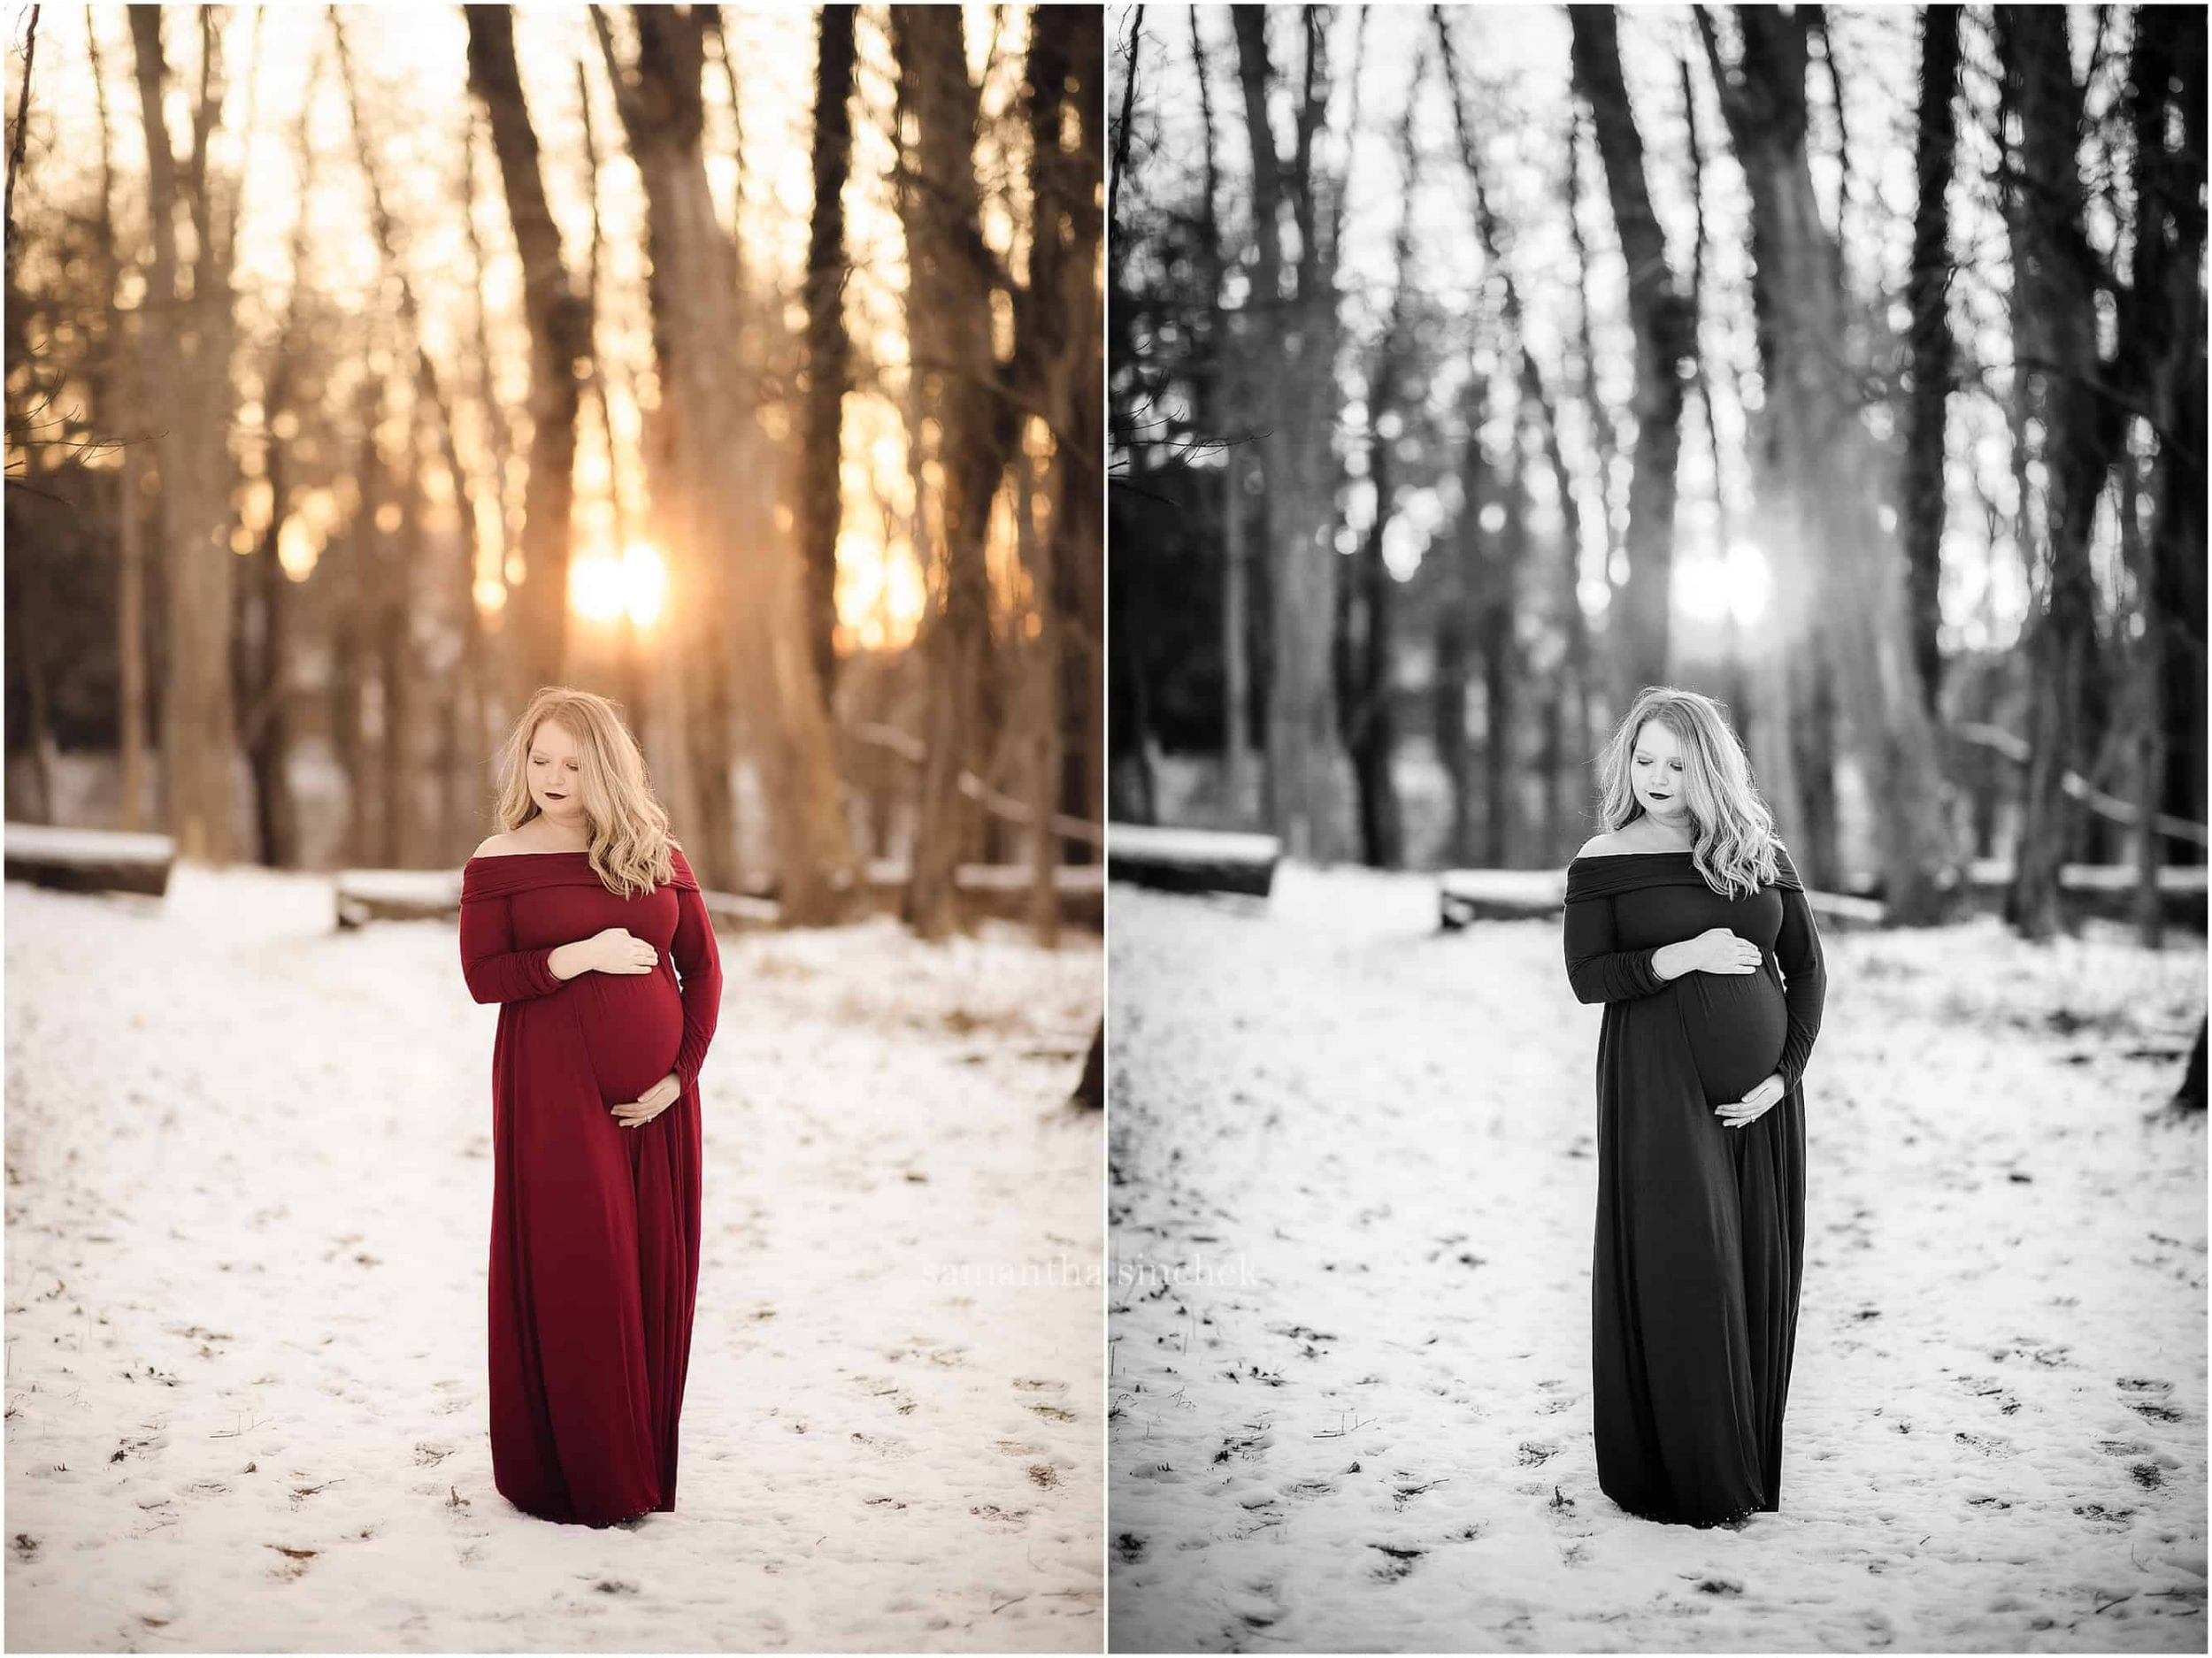 maternity session at Ault Park Cincinnati red dress in the snow Samantha Sinchek